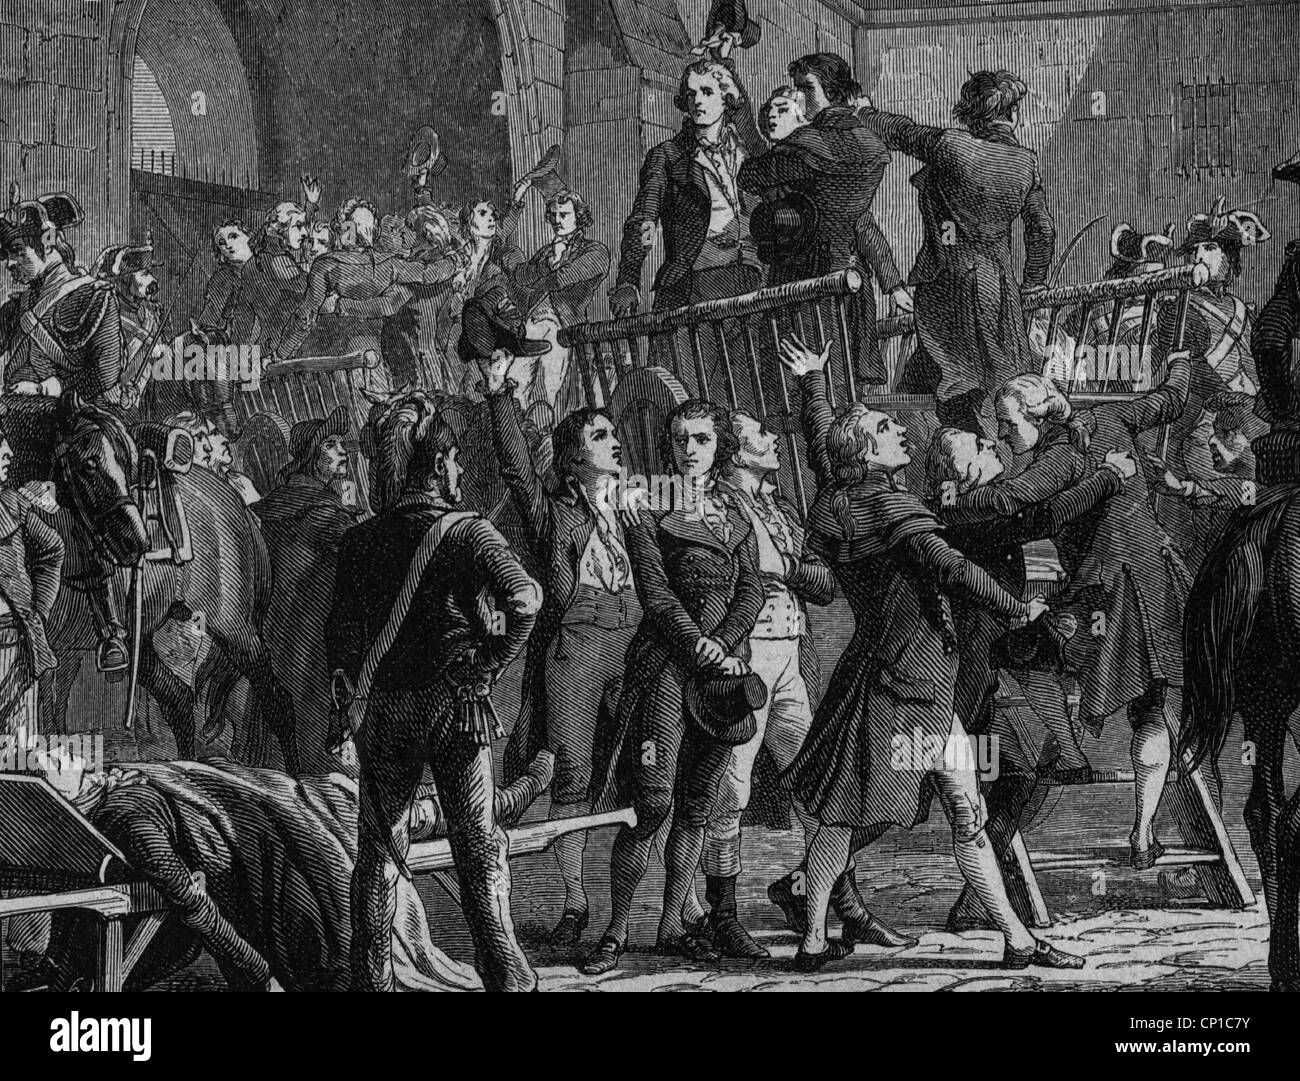 geography / travel, France, French Revolution 1789 - 1799, reign of terror, Girondists are carried to the place - Stock Image